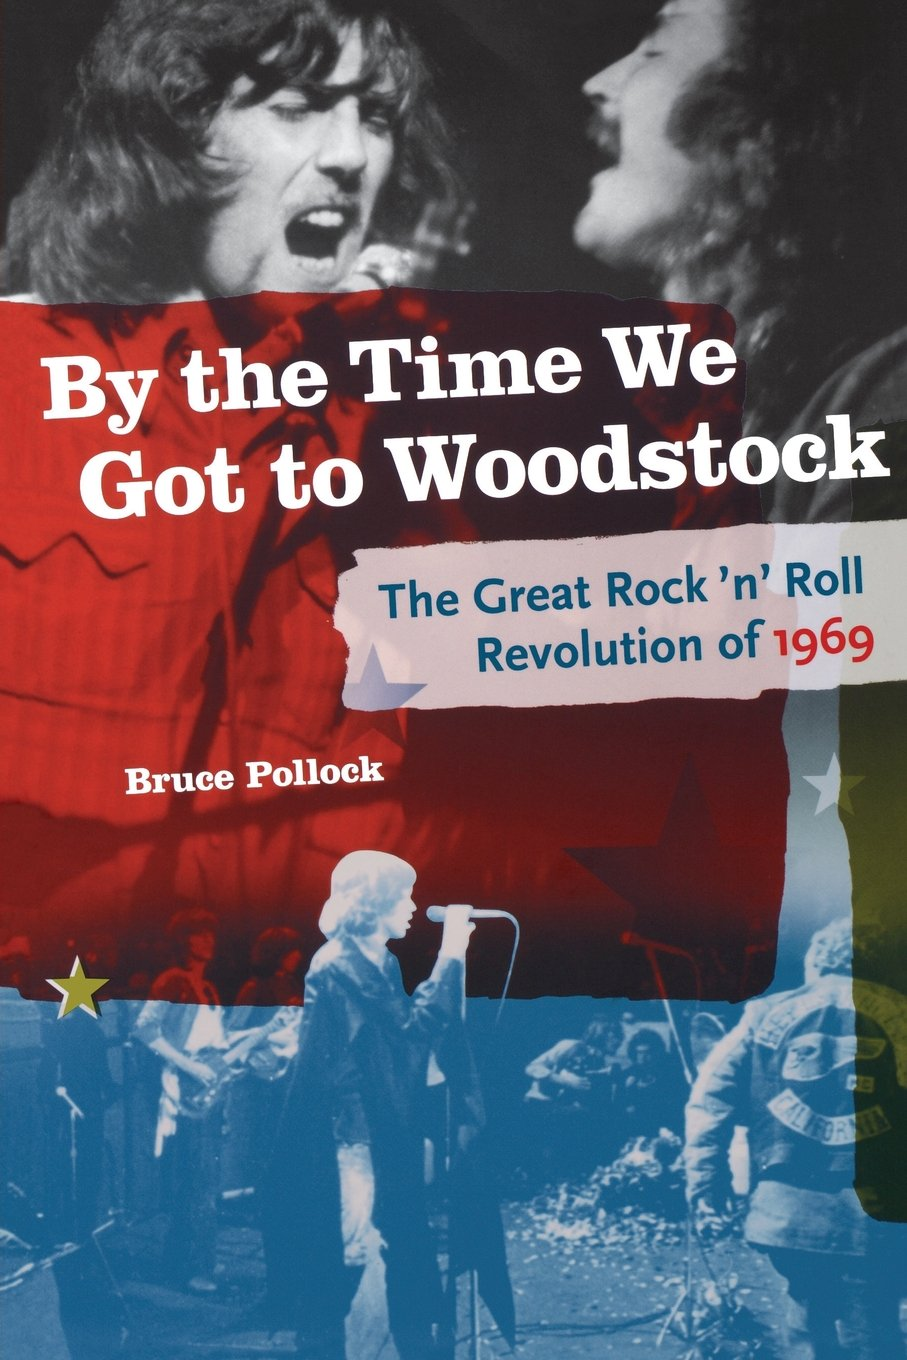 Download By The Time We Got to Woodstock: The Great Rock 'N' Roll Revolution Of 1969 ebook